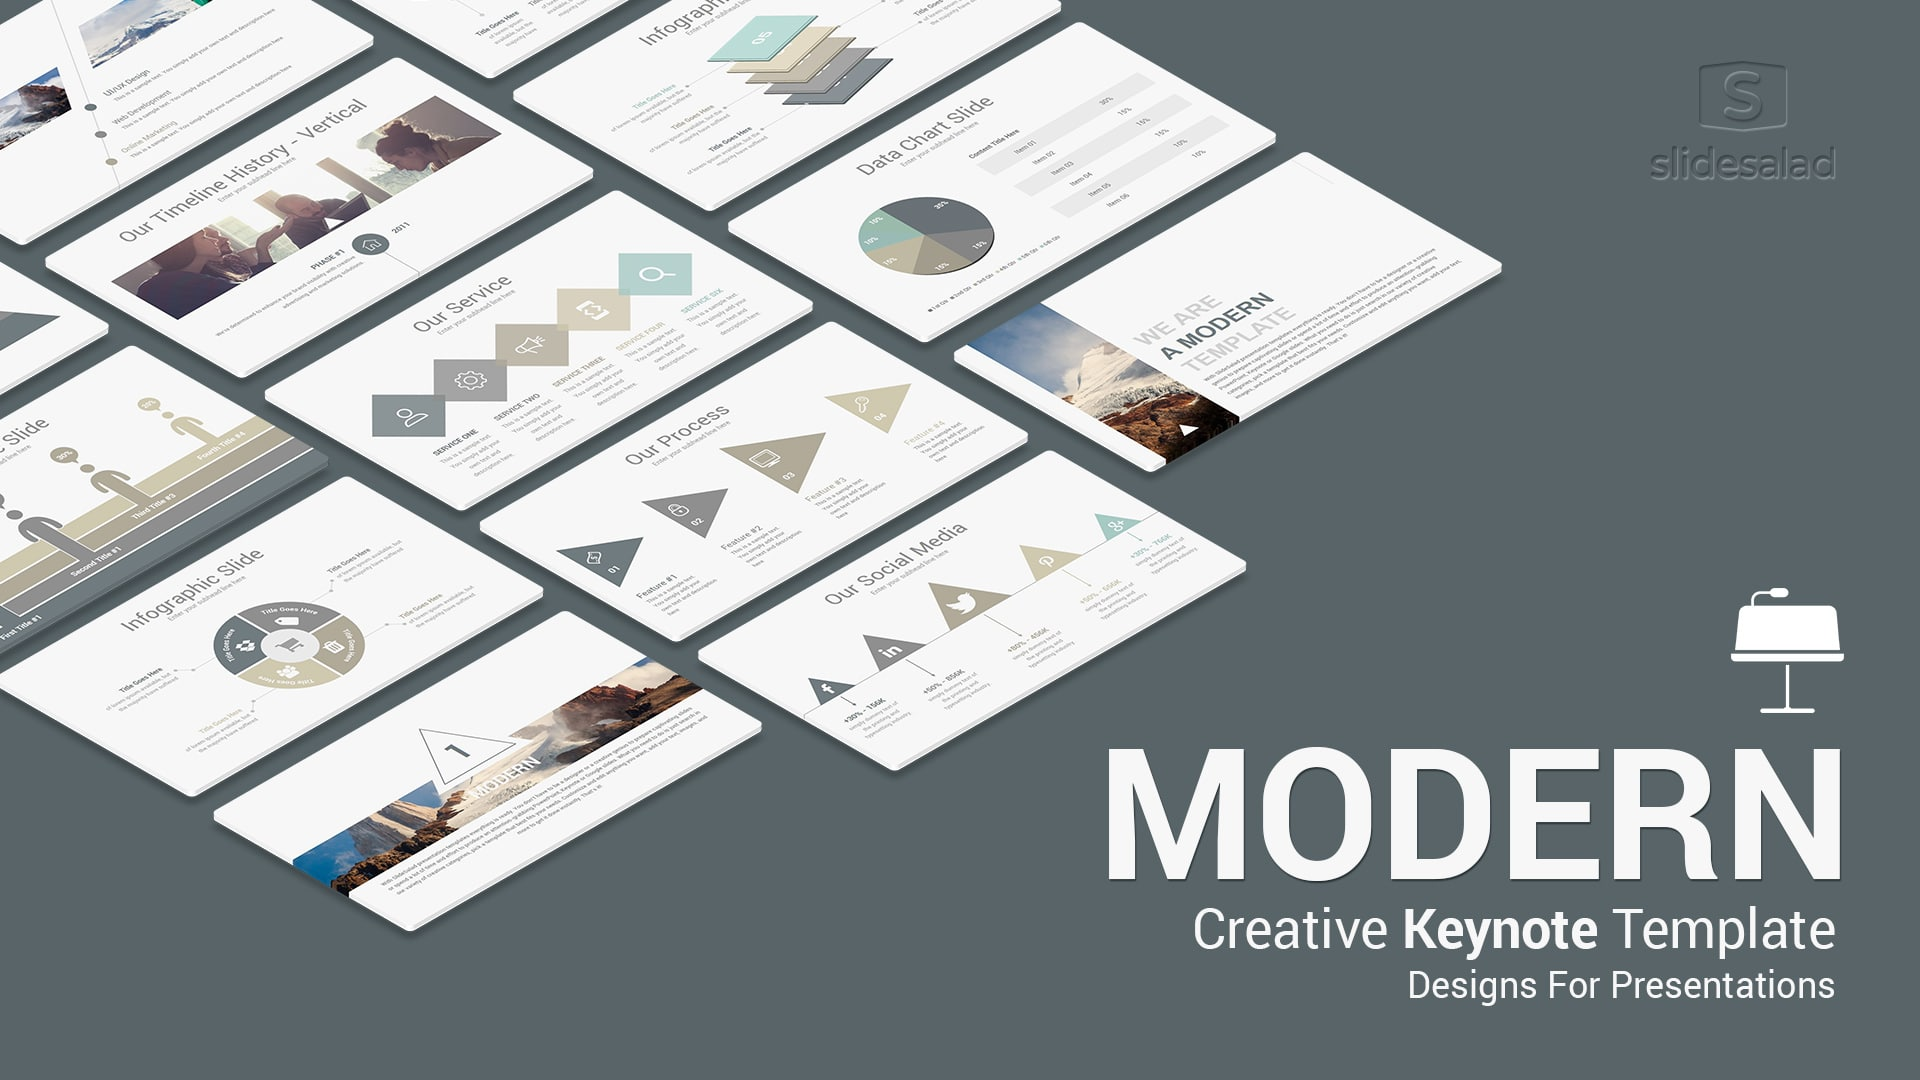 Modern Keynote Template for Presentations